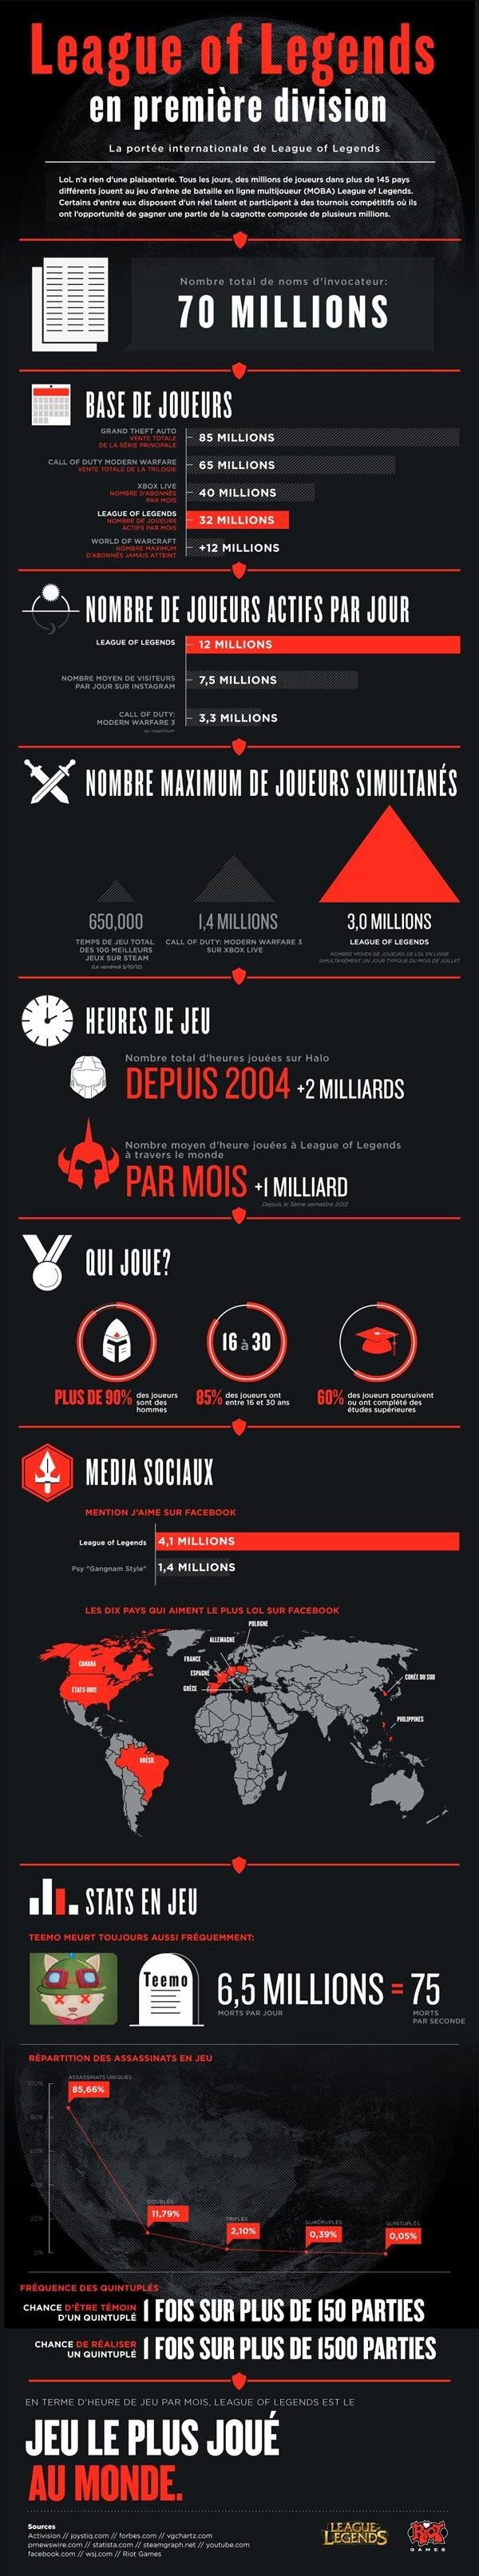 Infographie Leagues of Legends